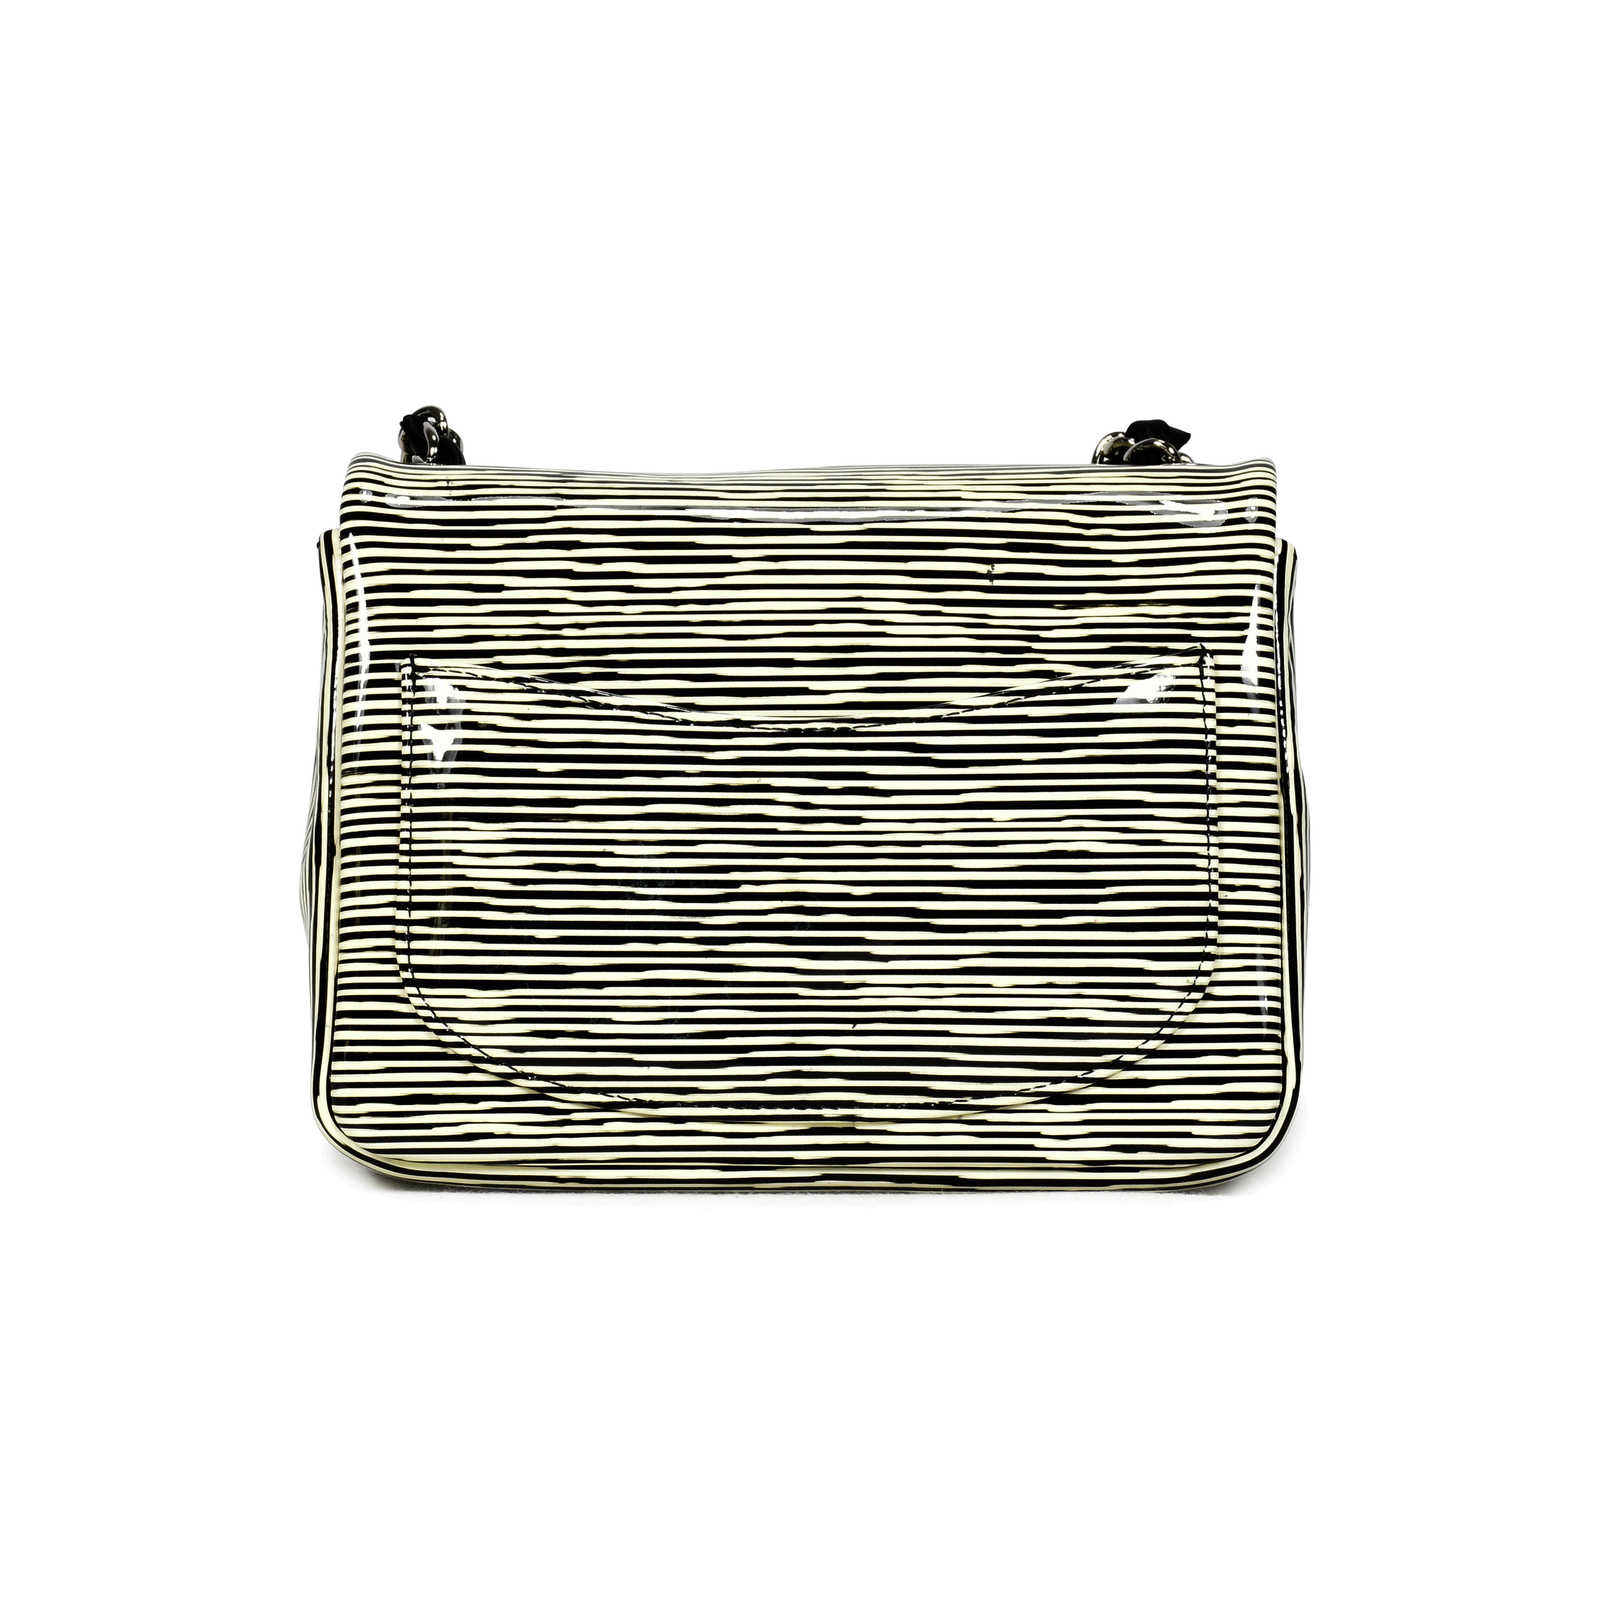 91dcee6b21f7 ... Authentic Second Hand Chanel Striped Patent Mini Classic Flap Bag  (PSS-139-00030 ...